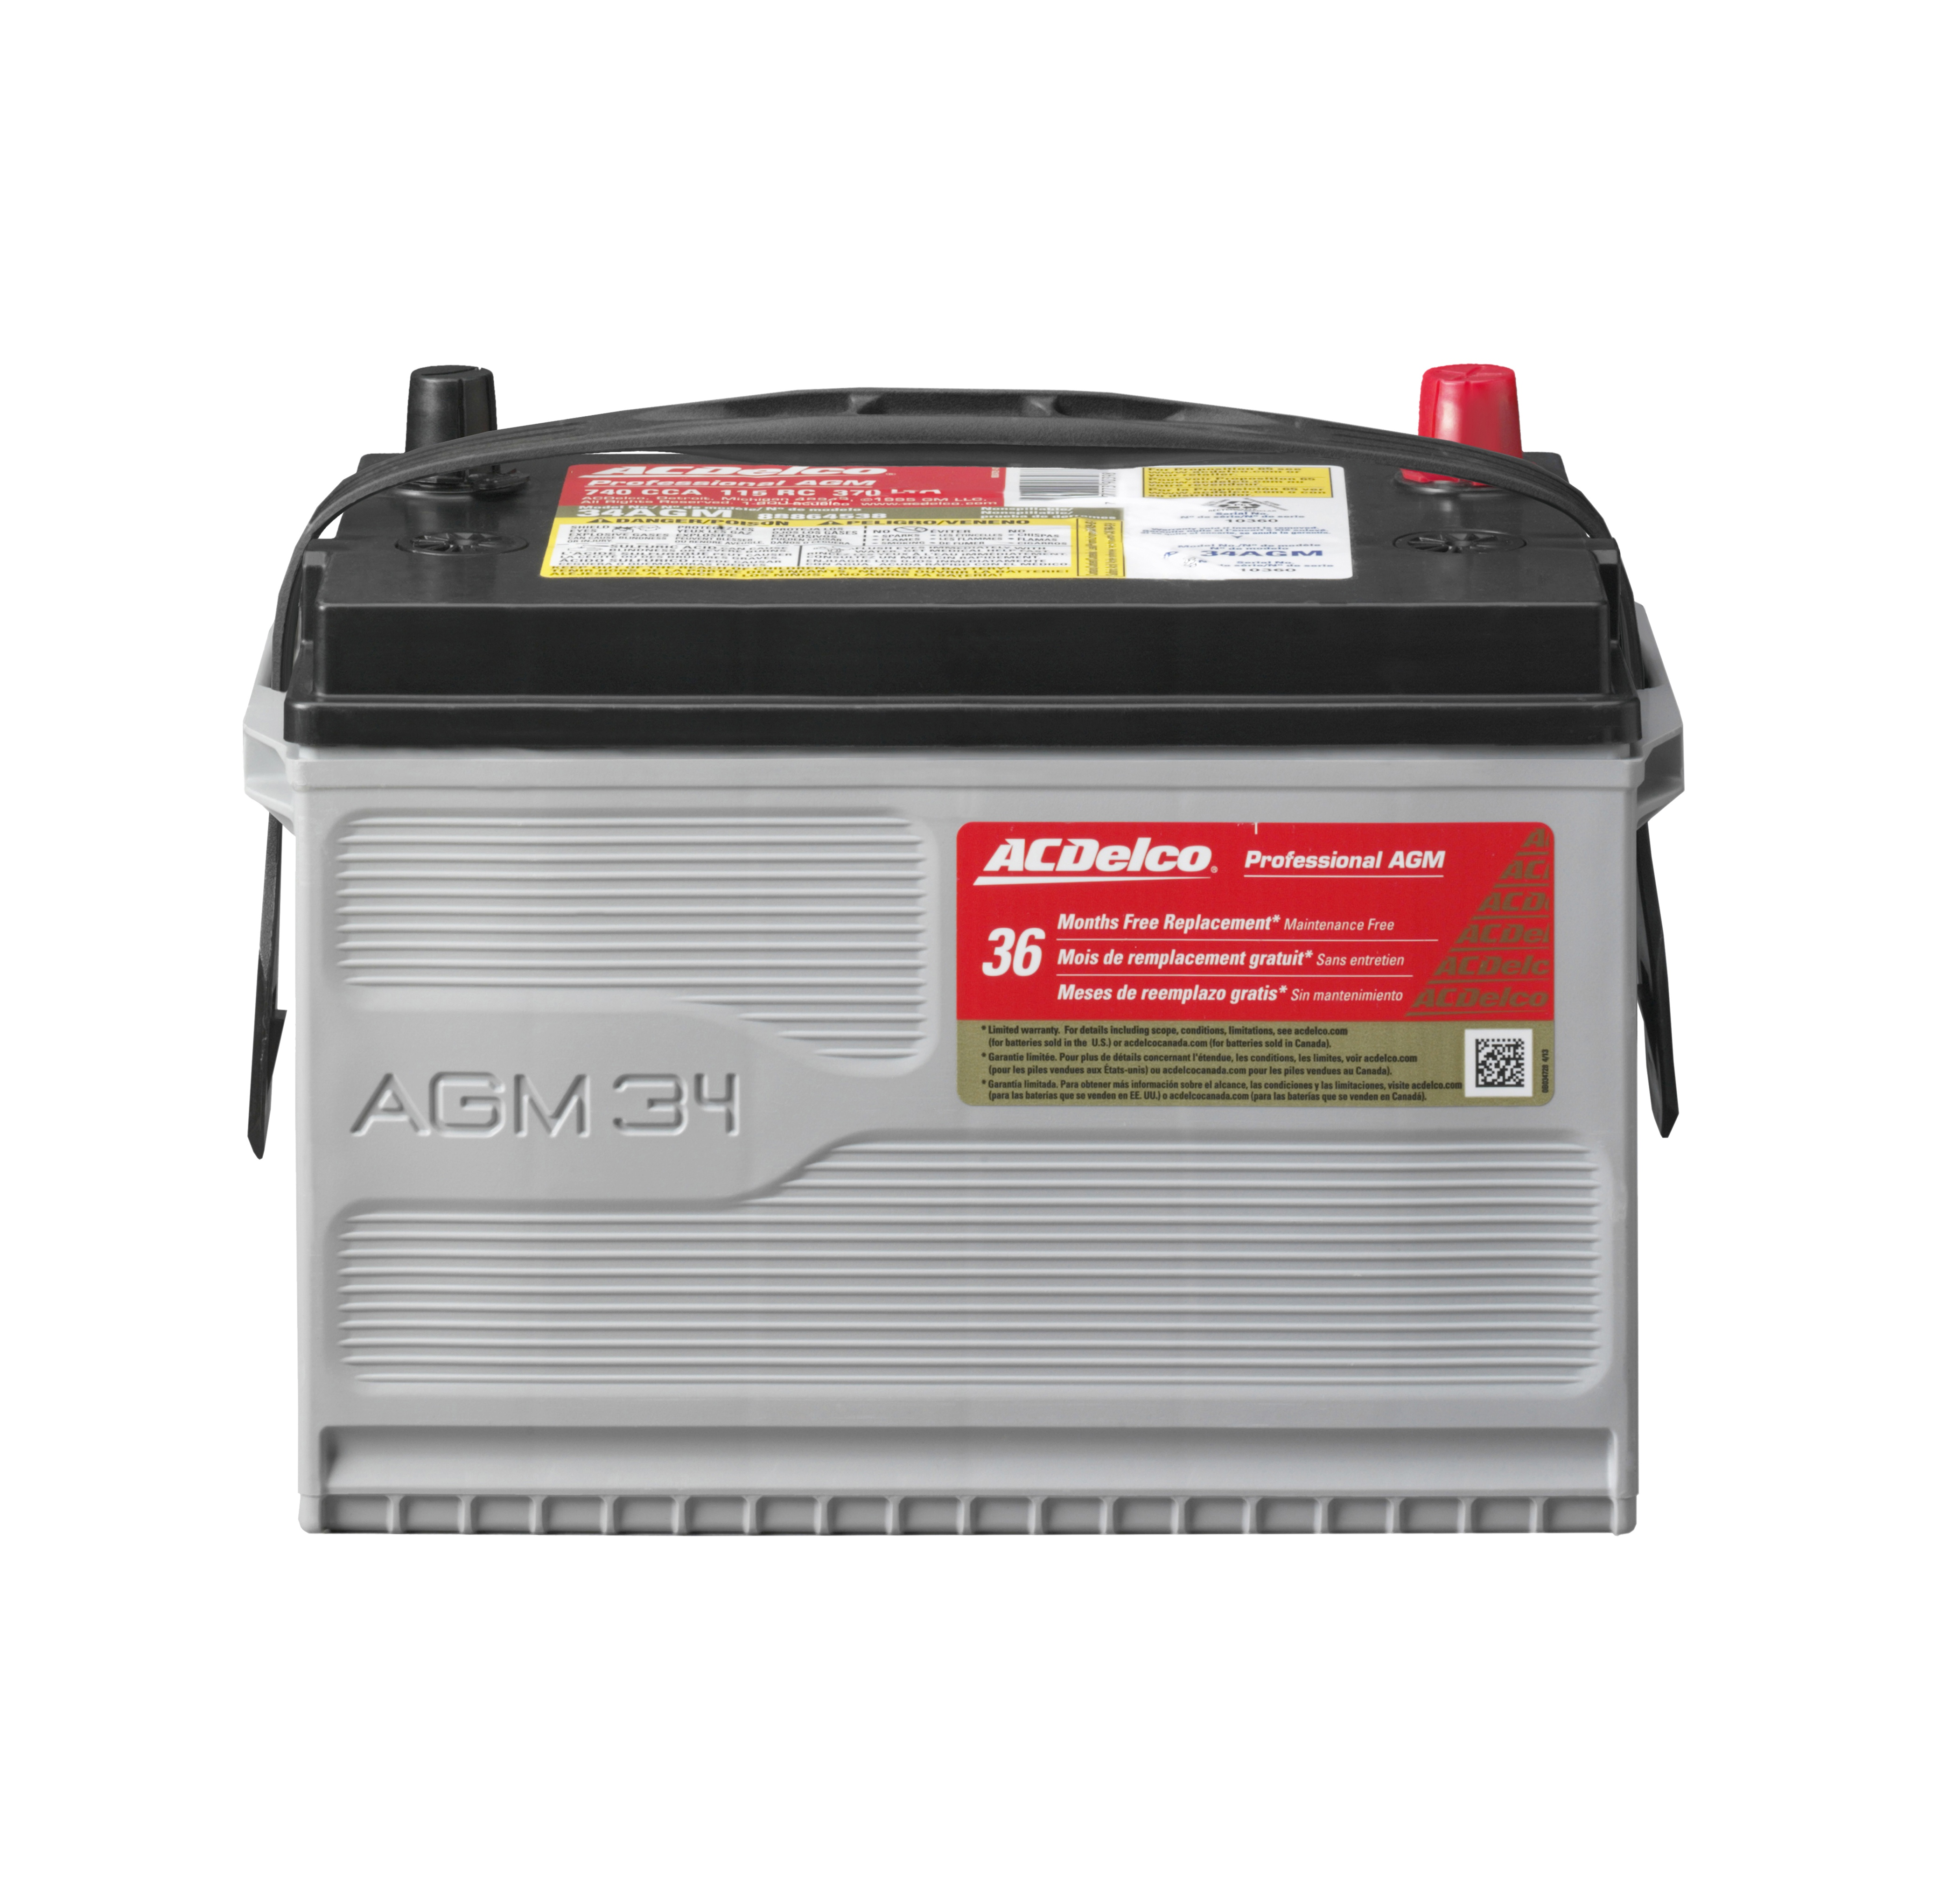 Battery Automotive AGM ACDELCO PRO 34AGM, 36 MONTH